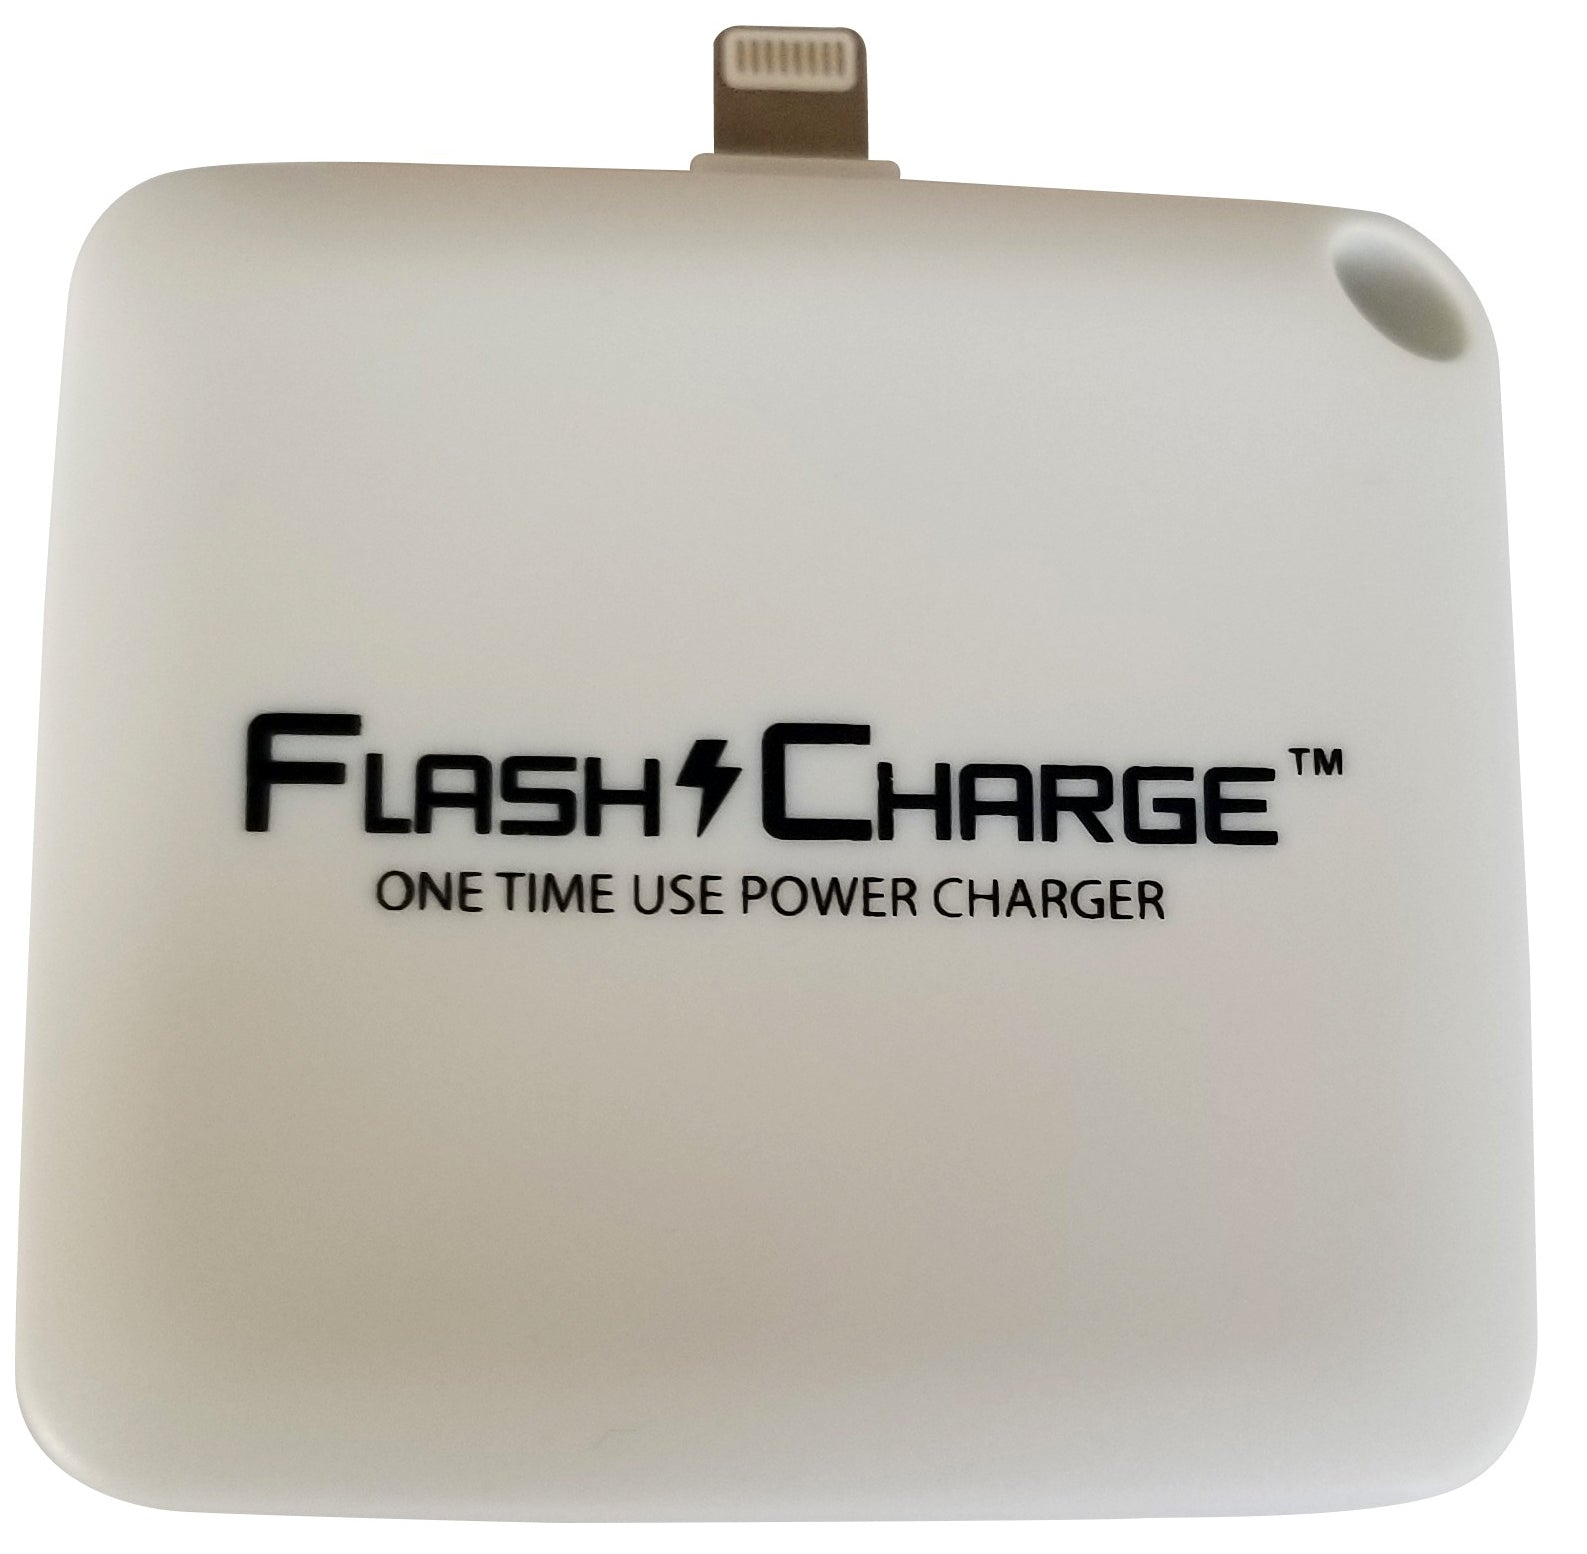 FlashCharge Disposable Power Bank (1000mAh) Emergency Charger